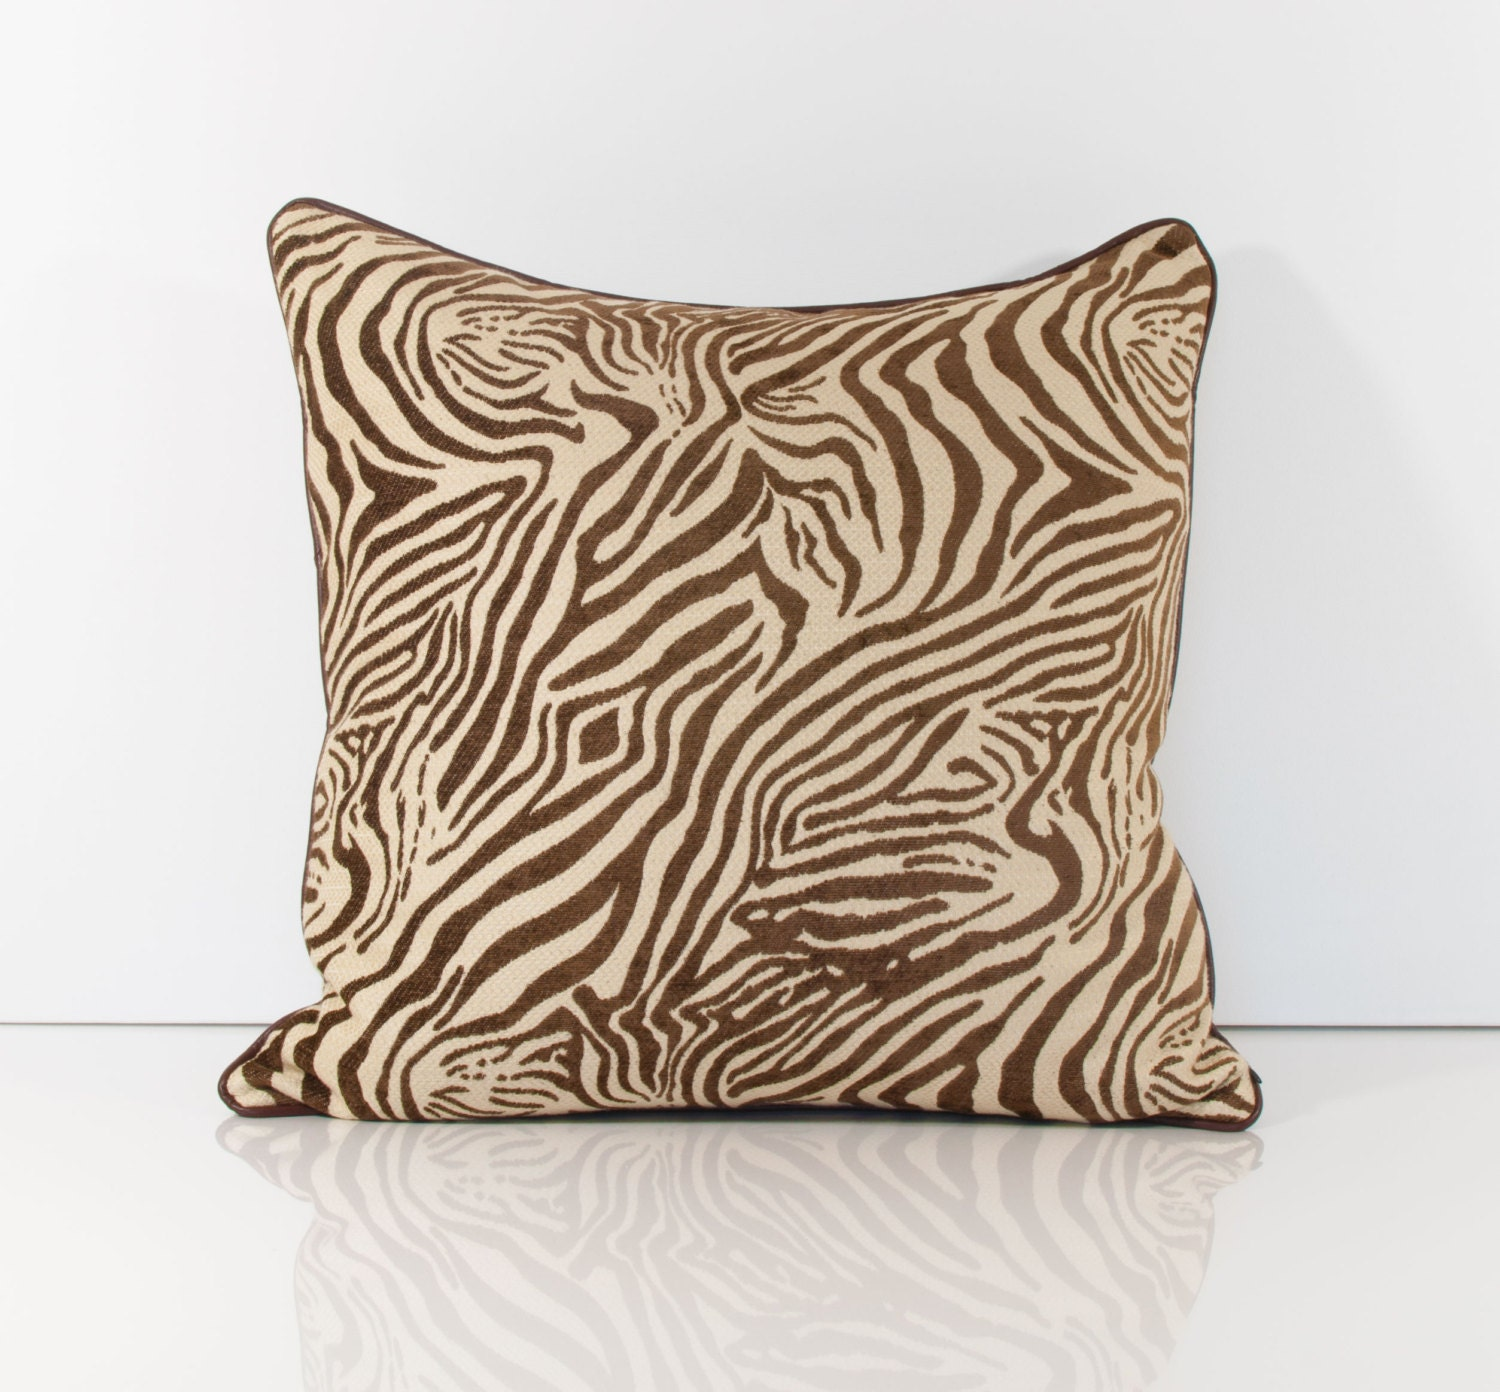 Animal Pillows : Animal Print Pillow Cover Brown Pillow Cover Zebra Pillows